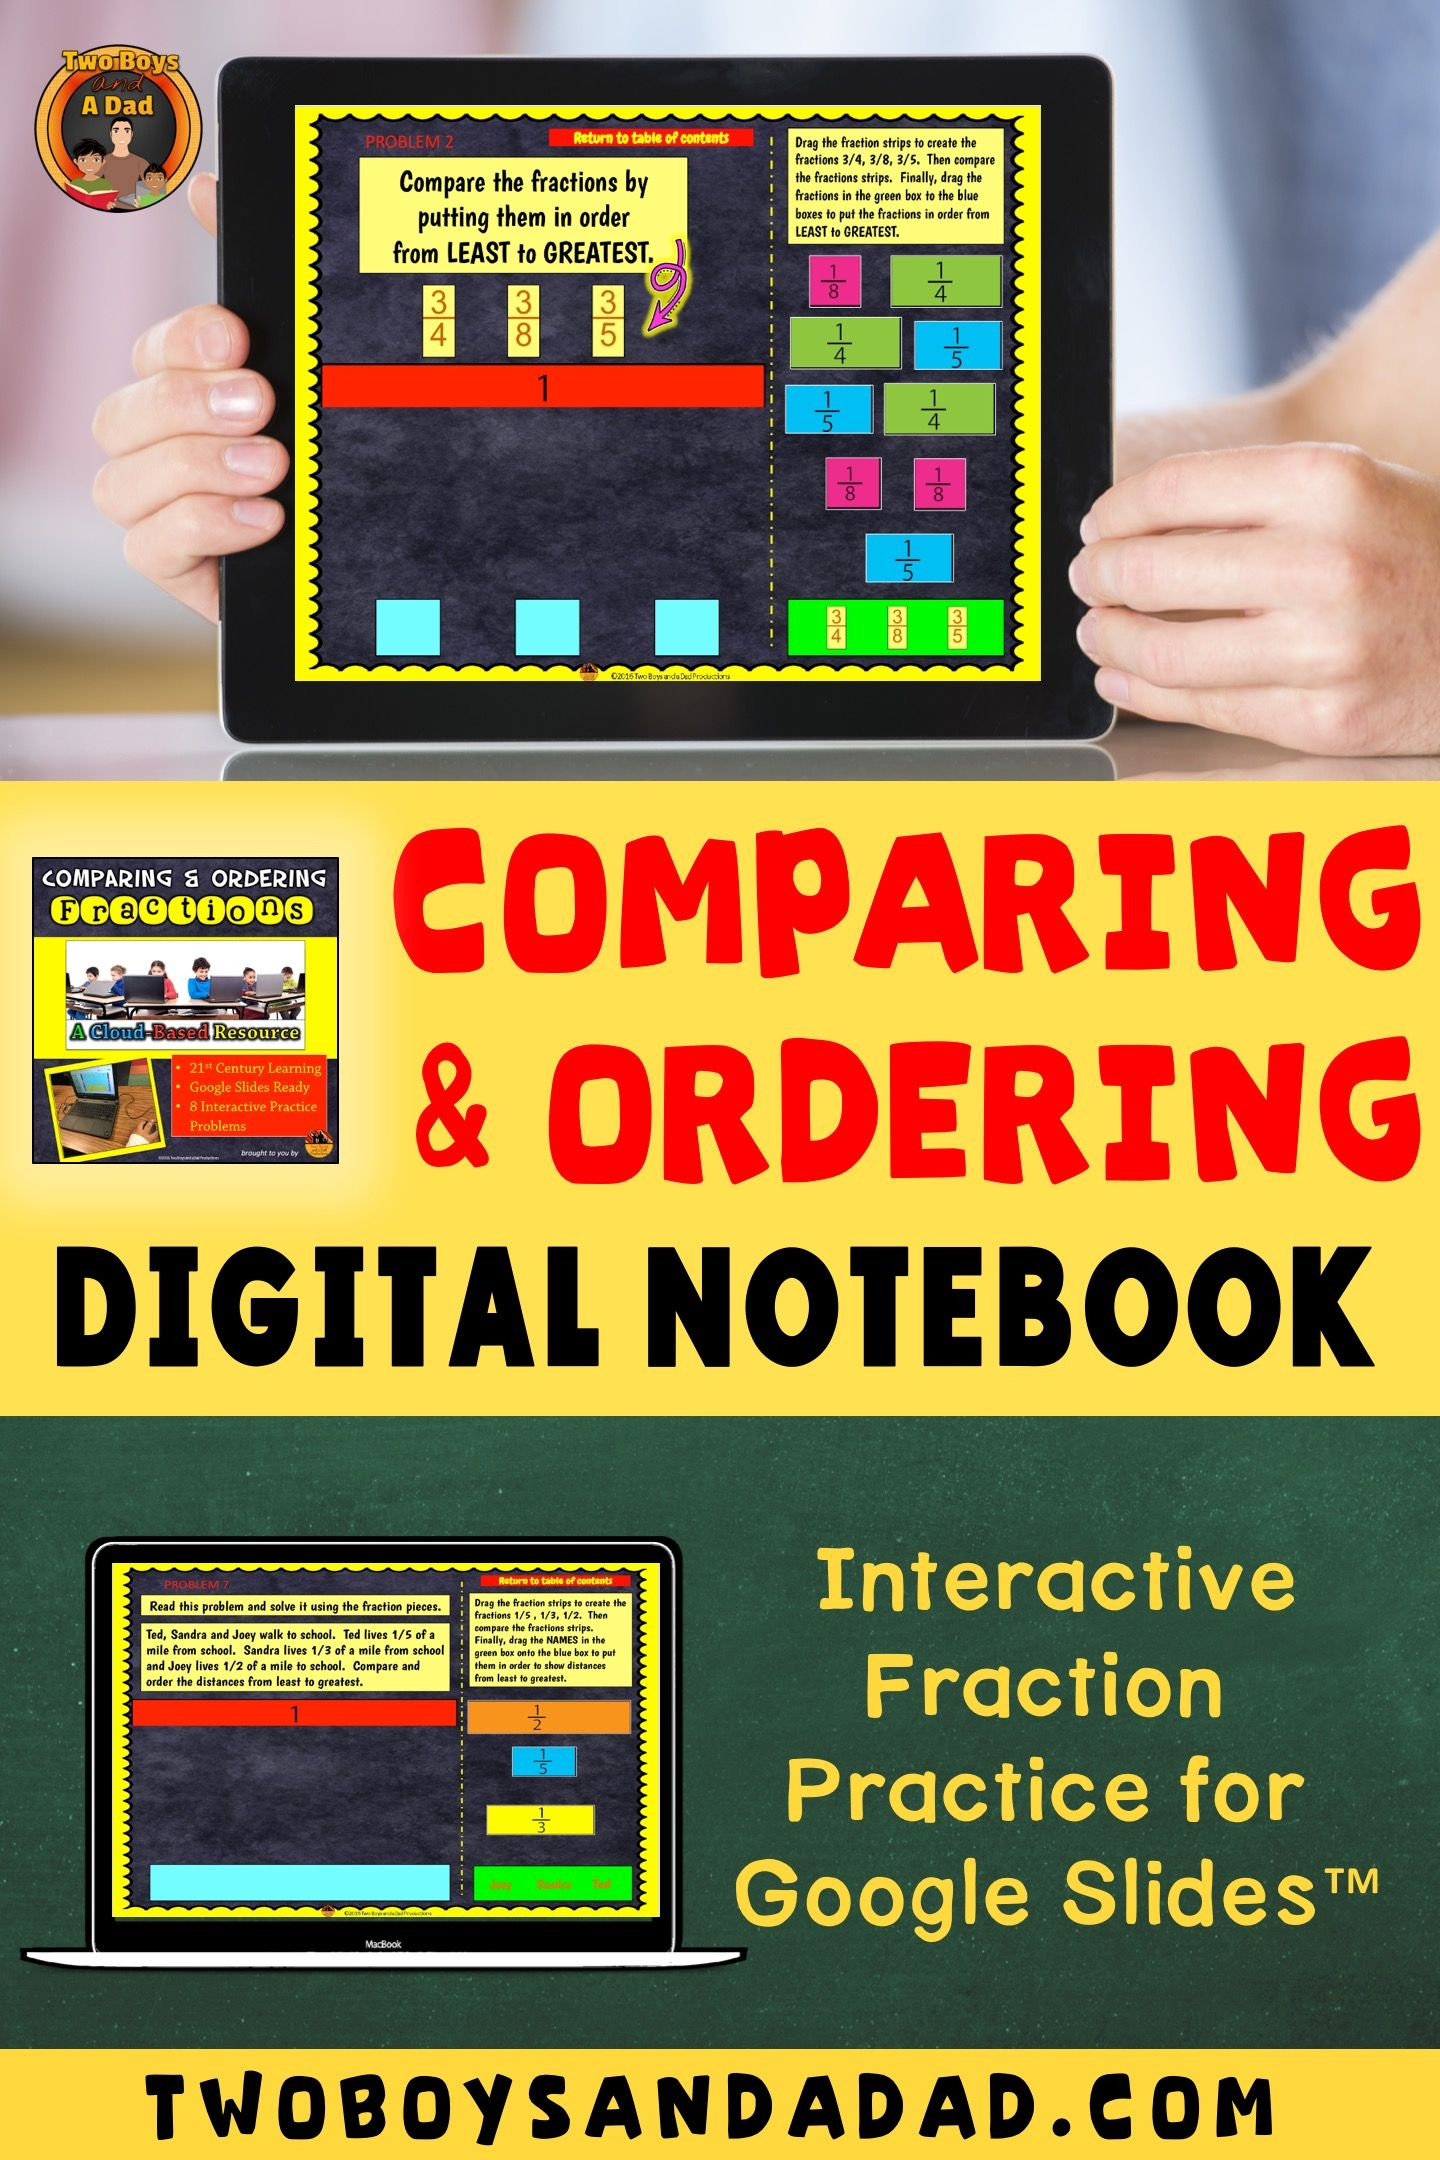 Comparing Fractions And Ordering For Slides For